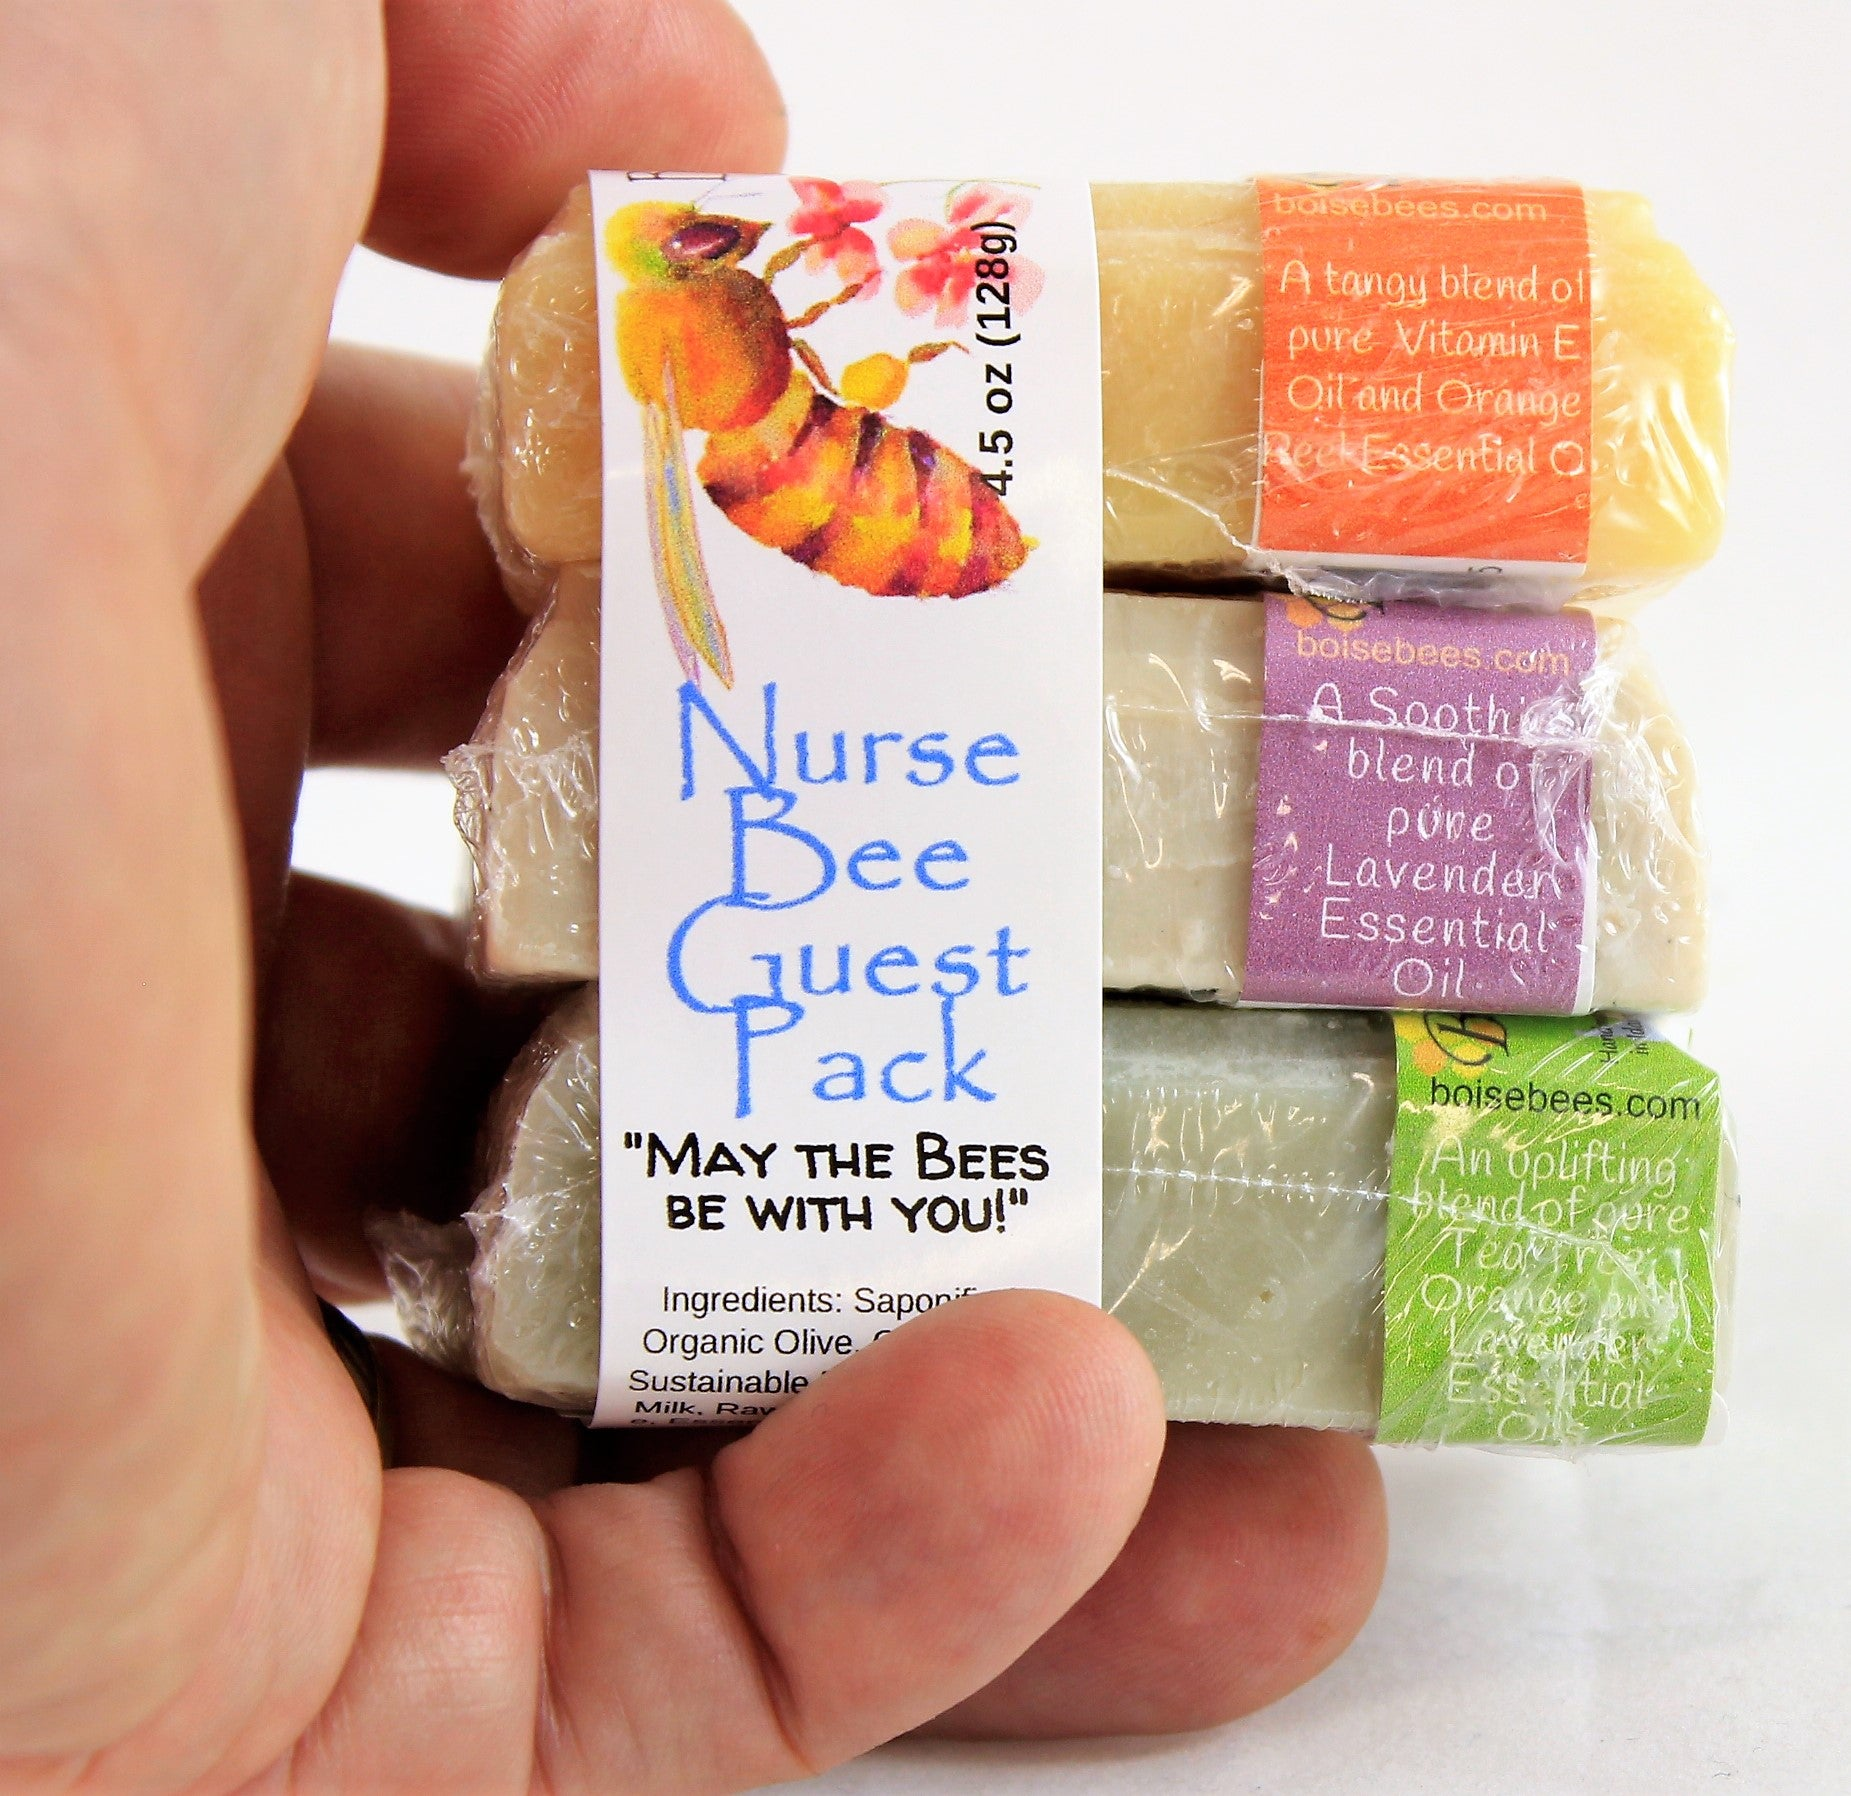 Nurse Bee Guest Pack